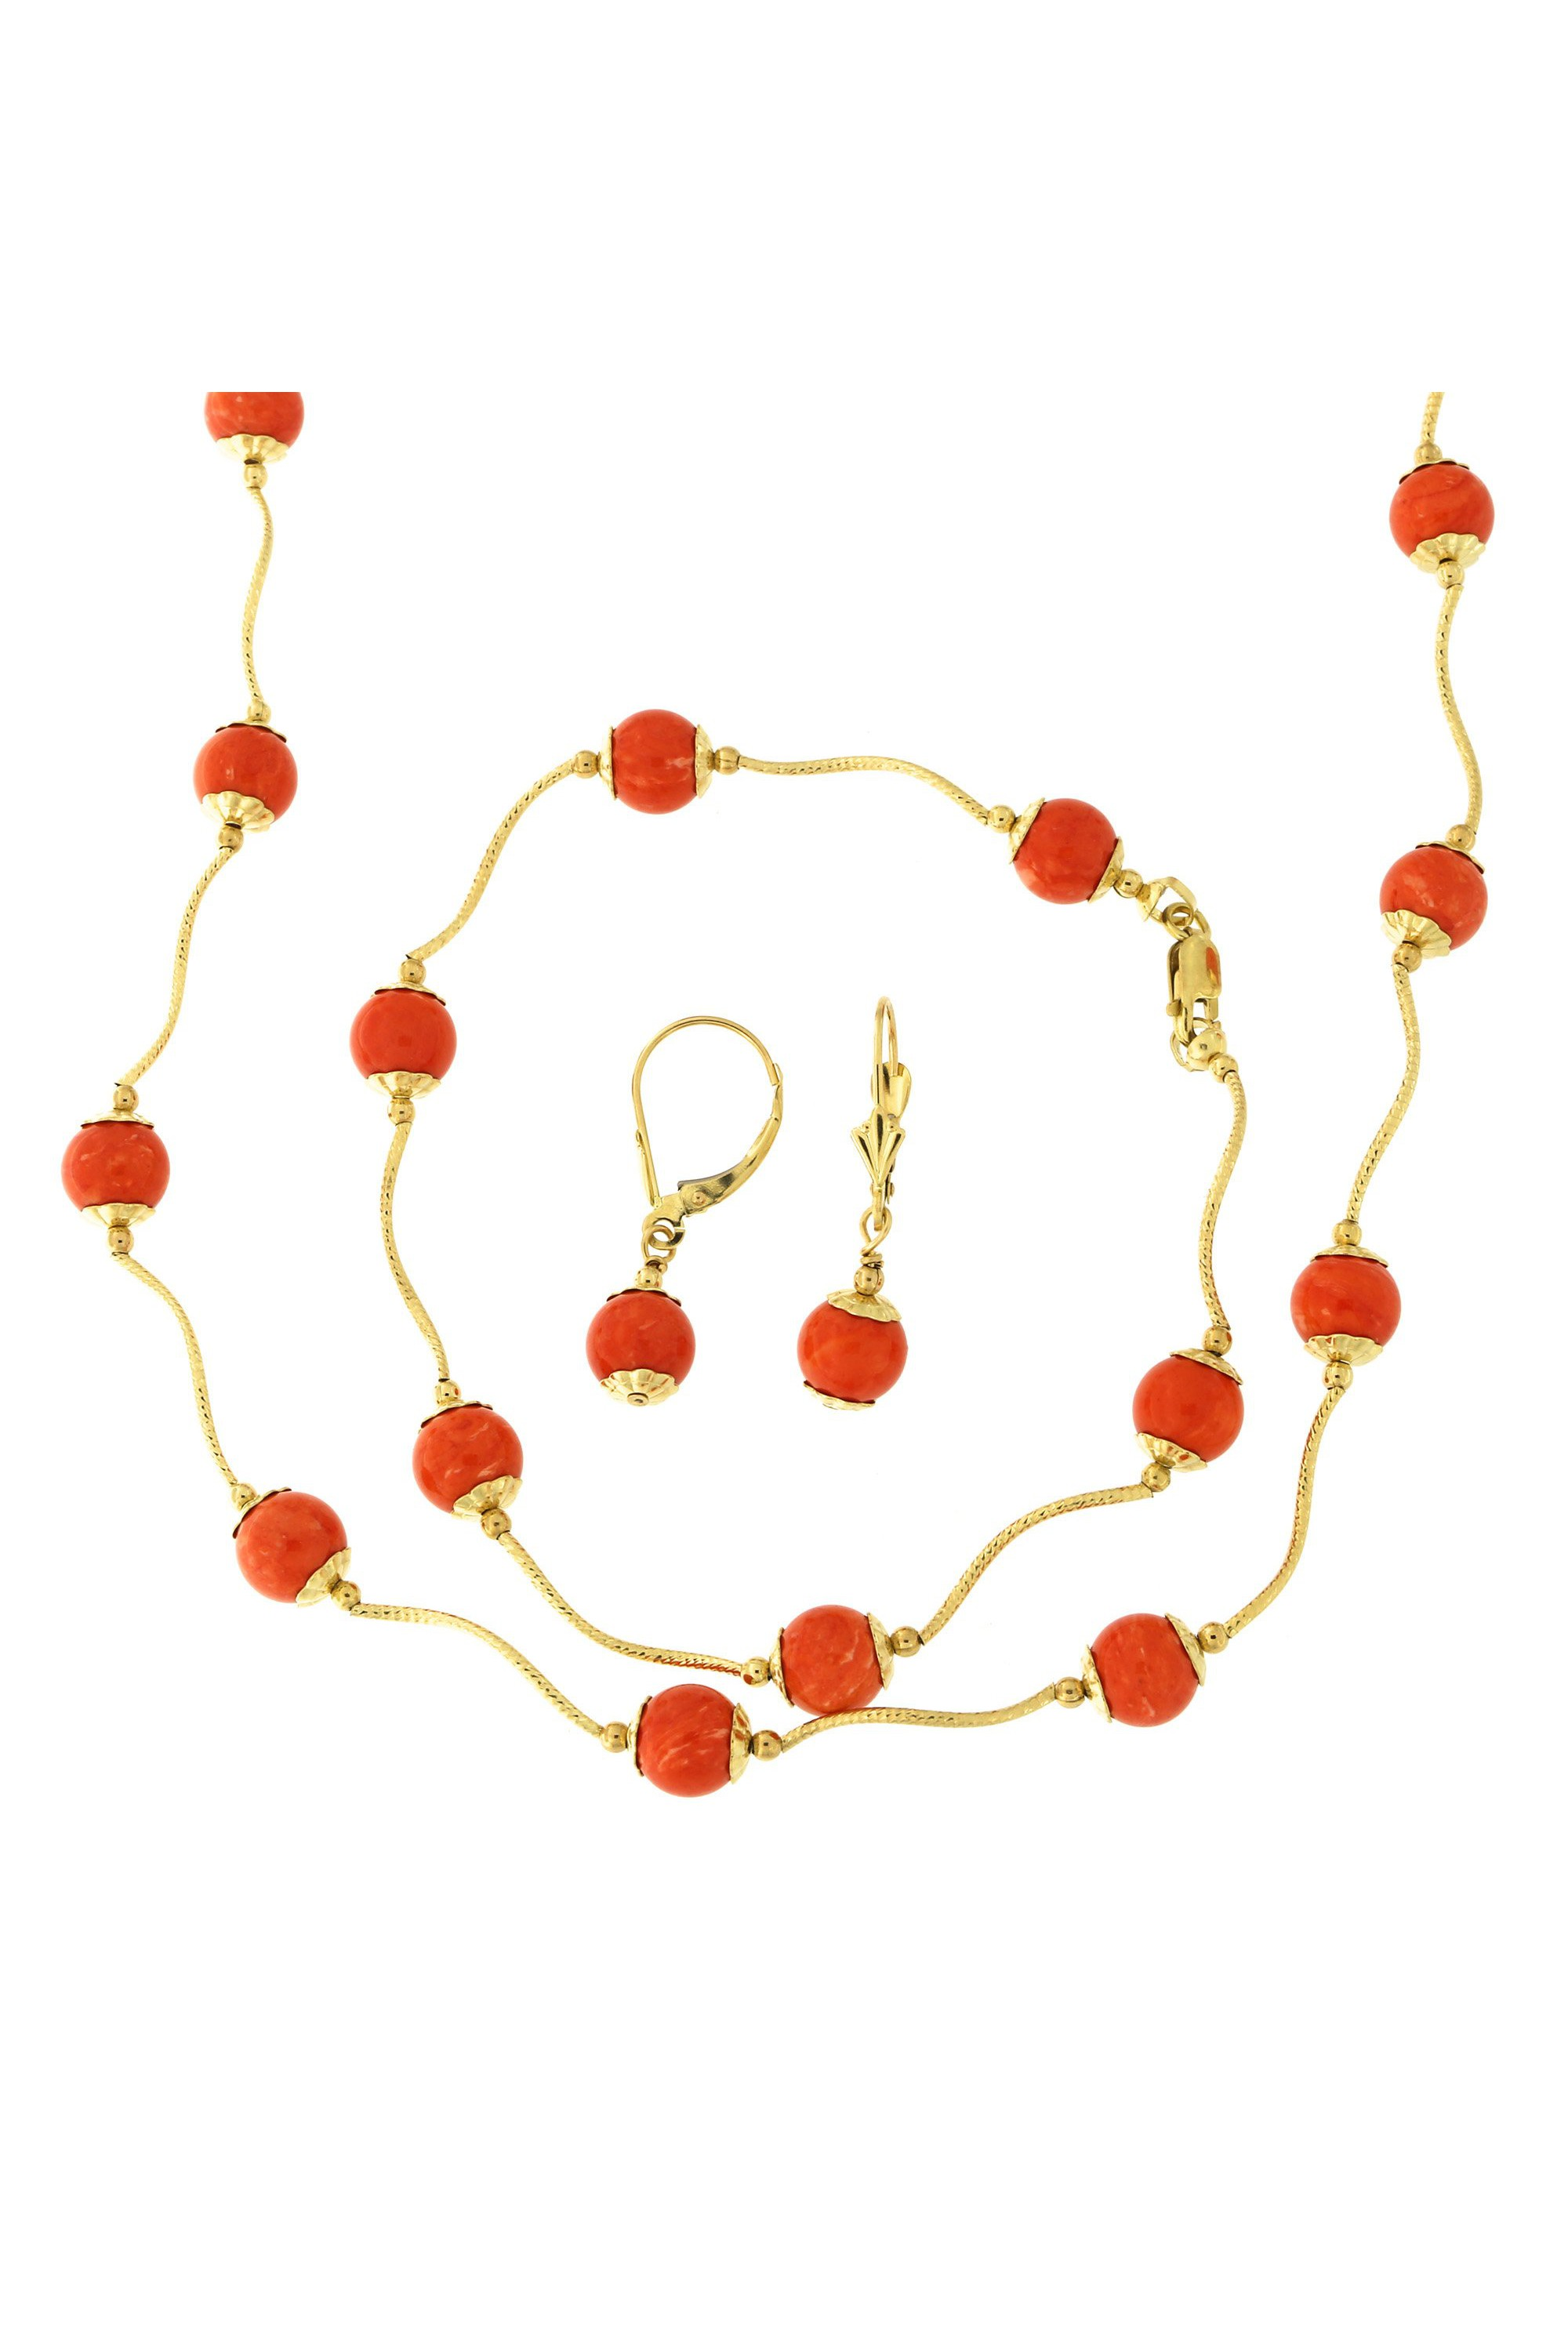 14k Yellow Gold Diamond Cut 7mm Capped Simulated Coral Station Necklace, Earrings and Bracelet Set by